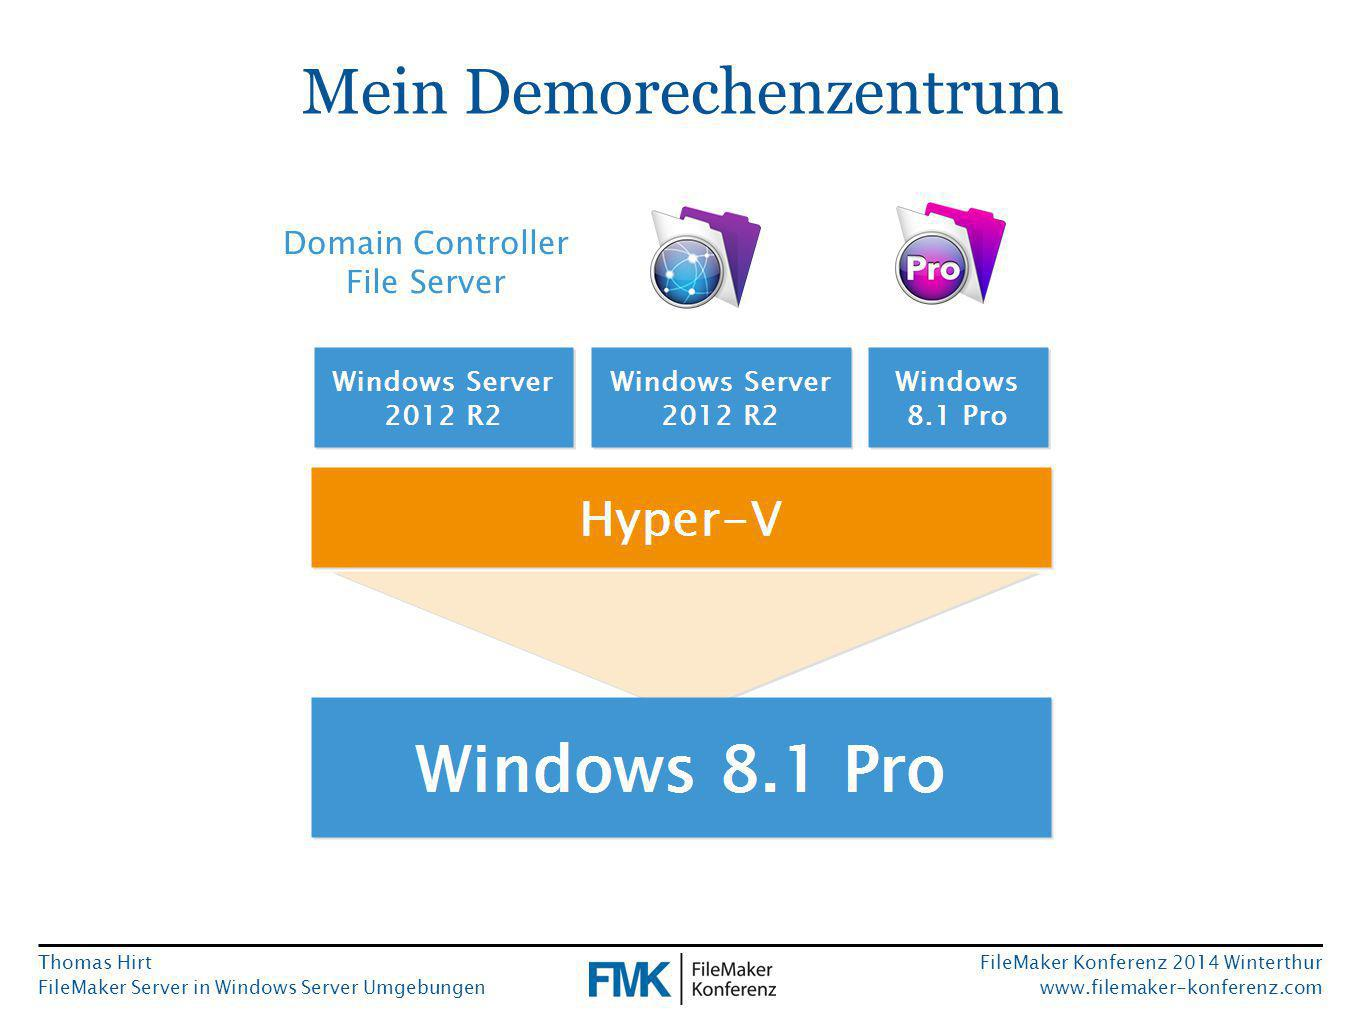 Thomas Hirt FileMaker Server in Windows Server Umgebungen FileMaker Konferenz 2014 Winterthur www.filemaker-konferenz.com Mein Demorechenzentrum Domain Controller File Server